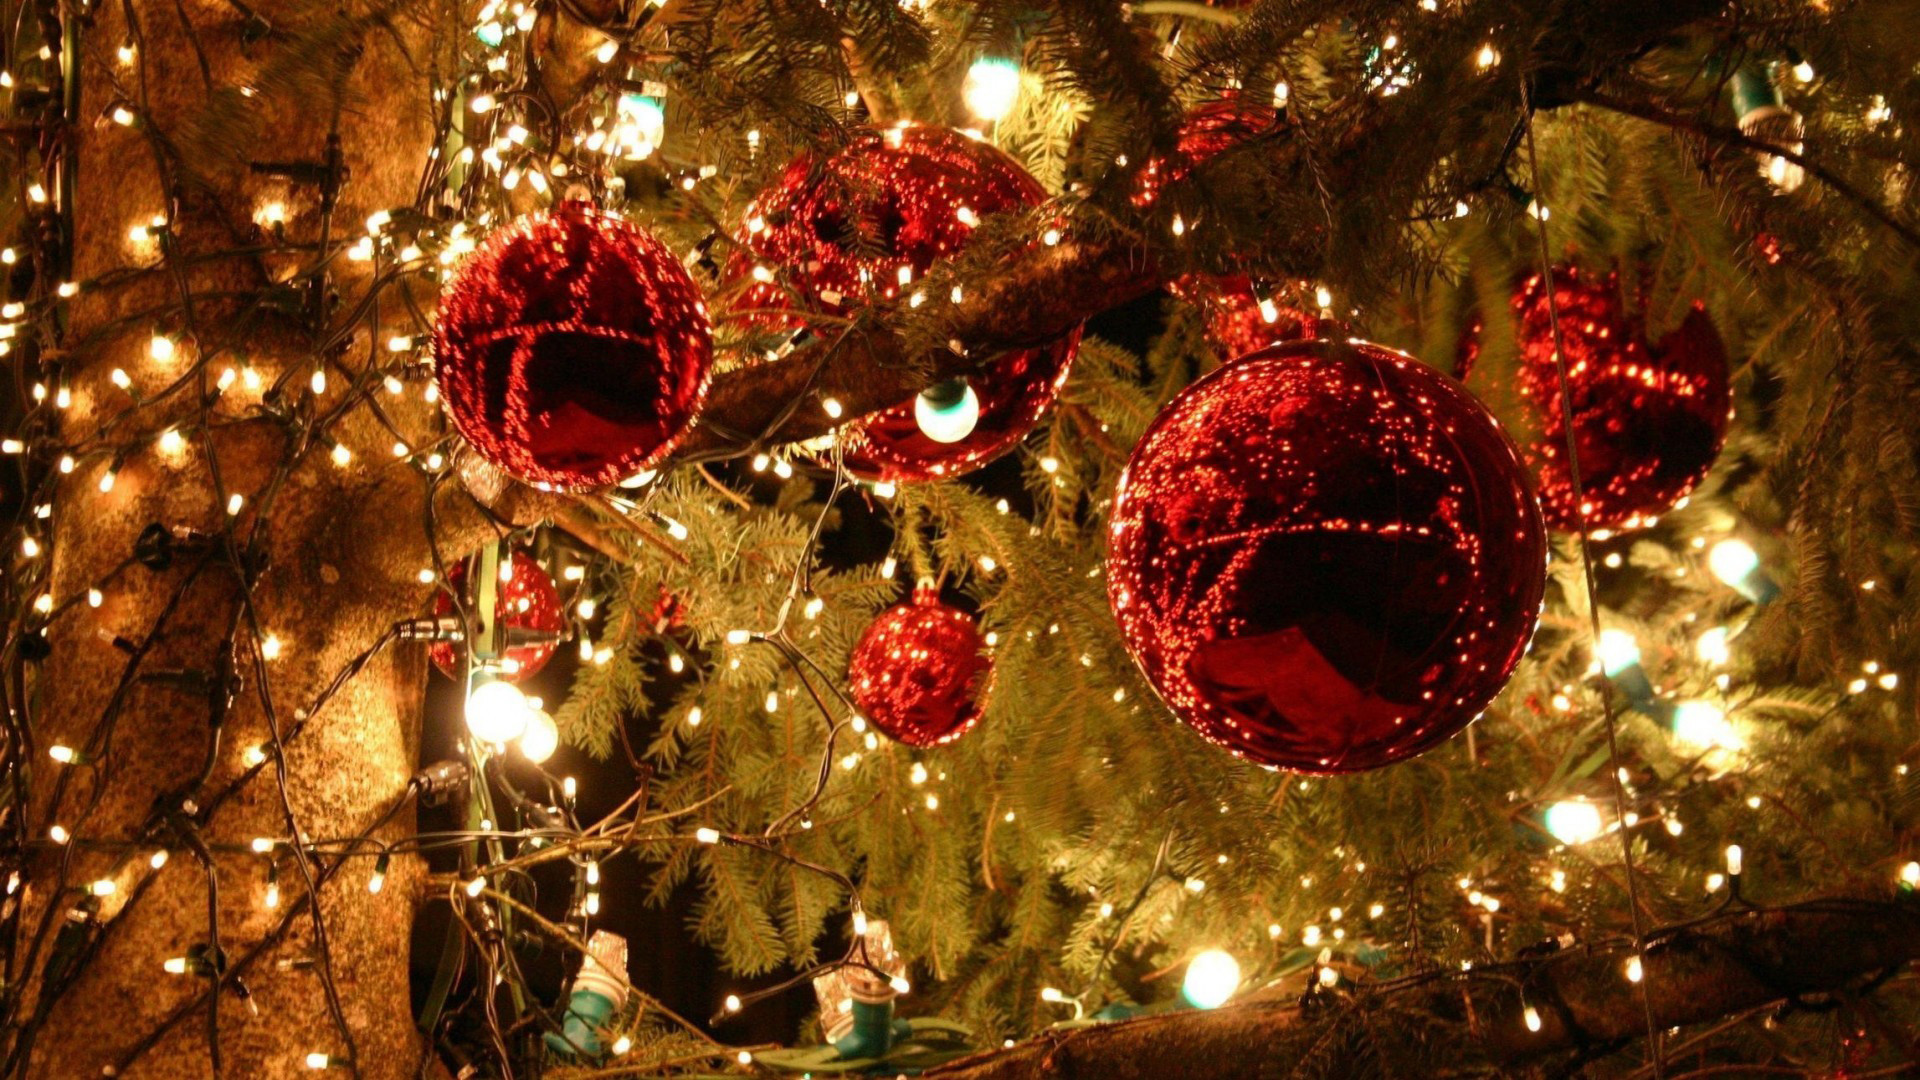 Download Merry Christmas HD Image